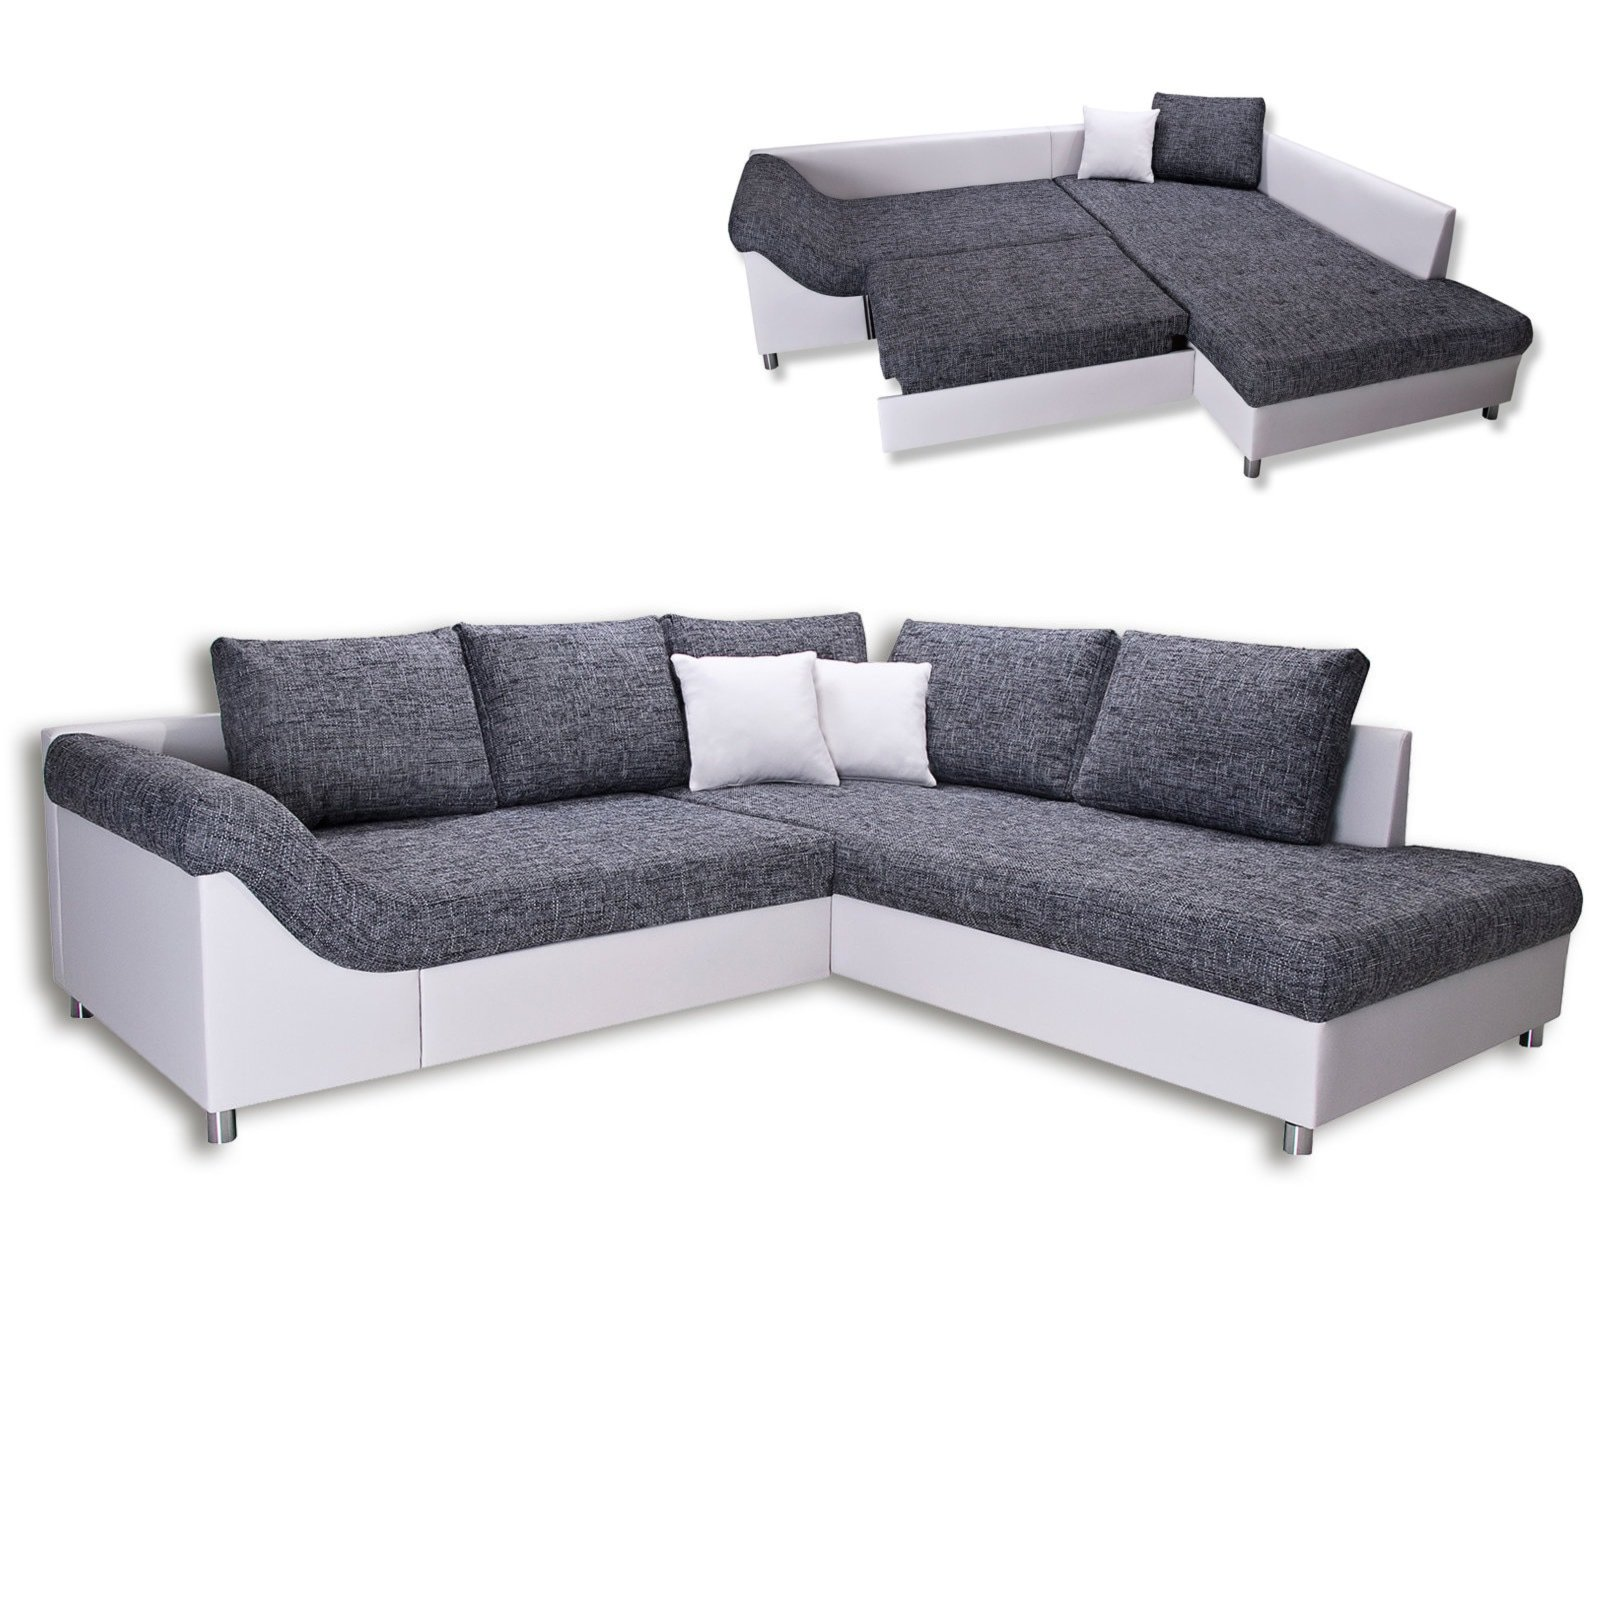 Interliving Ecksofa Ecksofa Dunkelgrau Top Continue Reading With Ecksofa